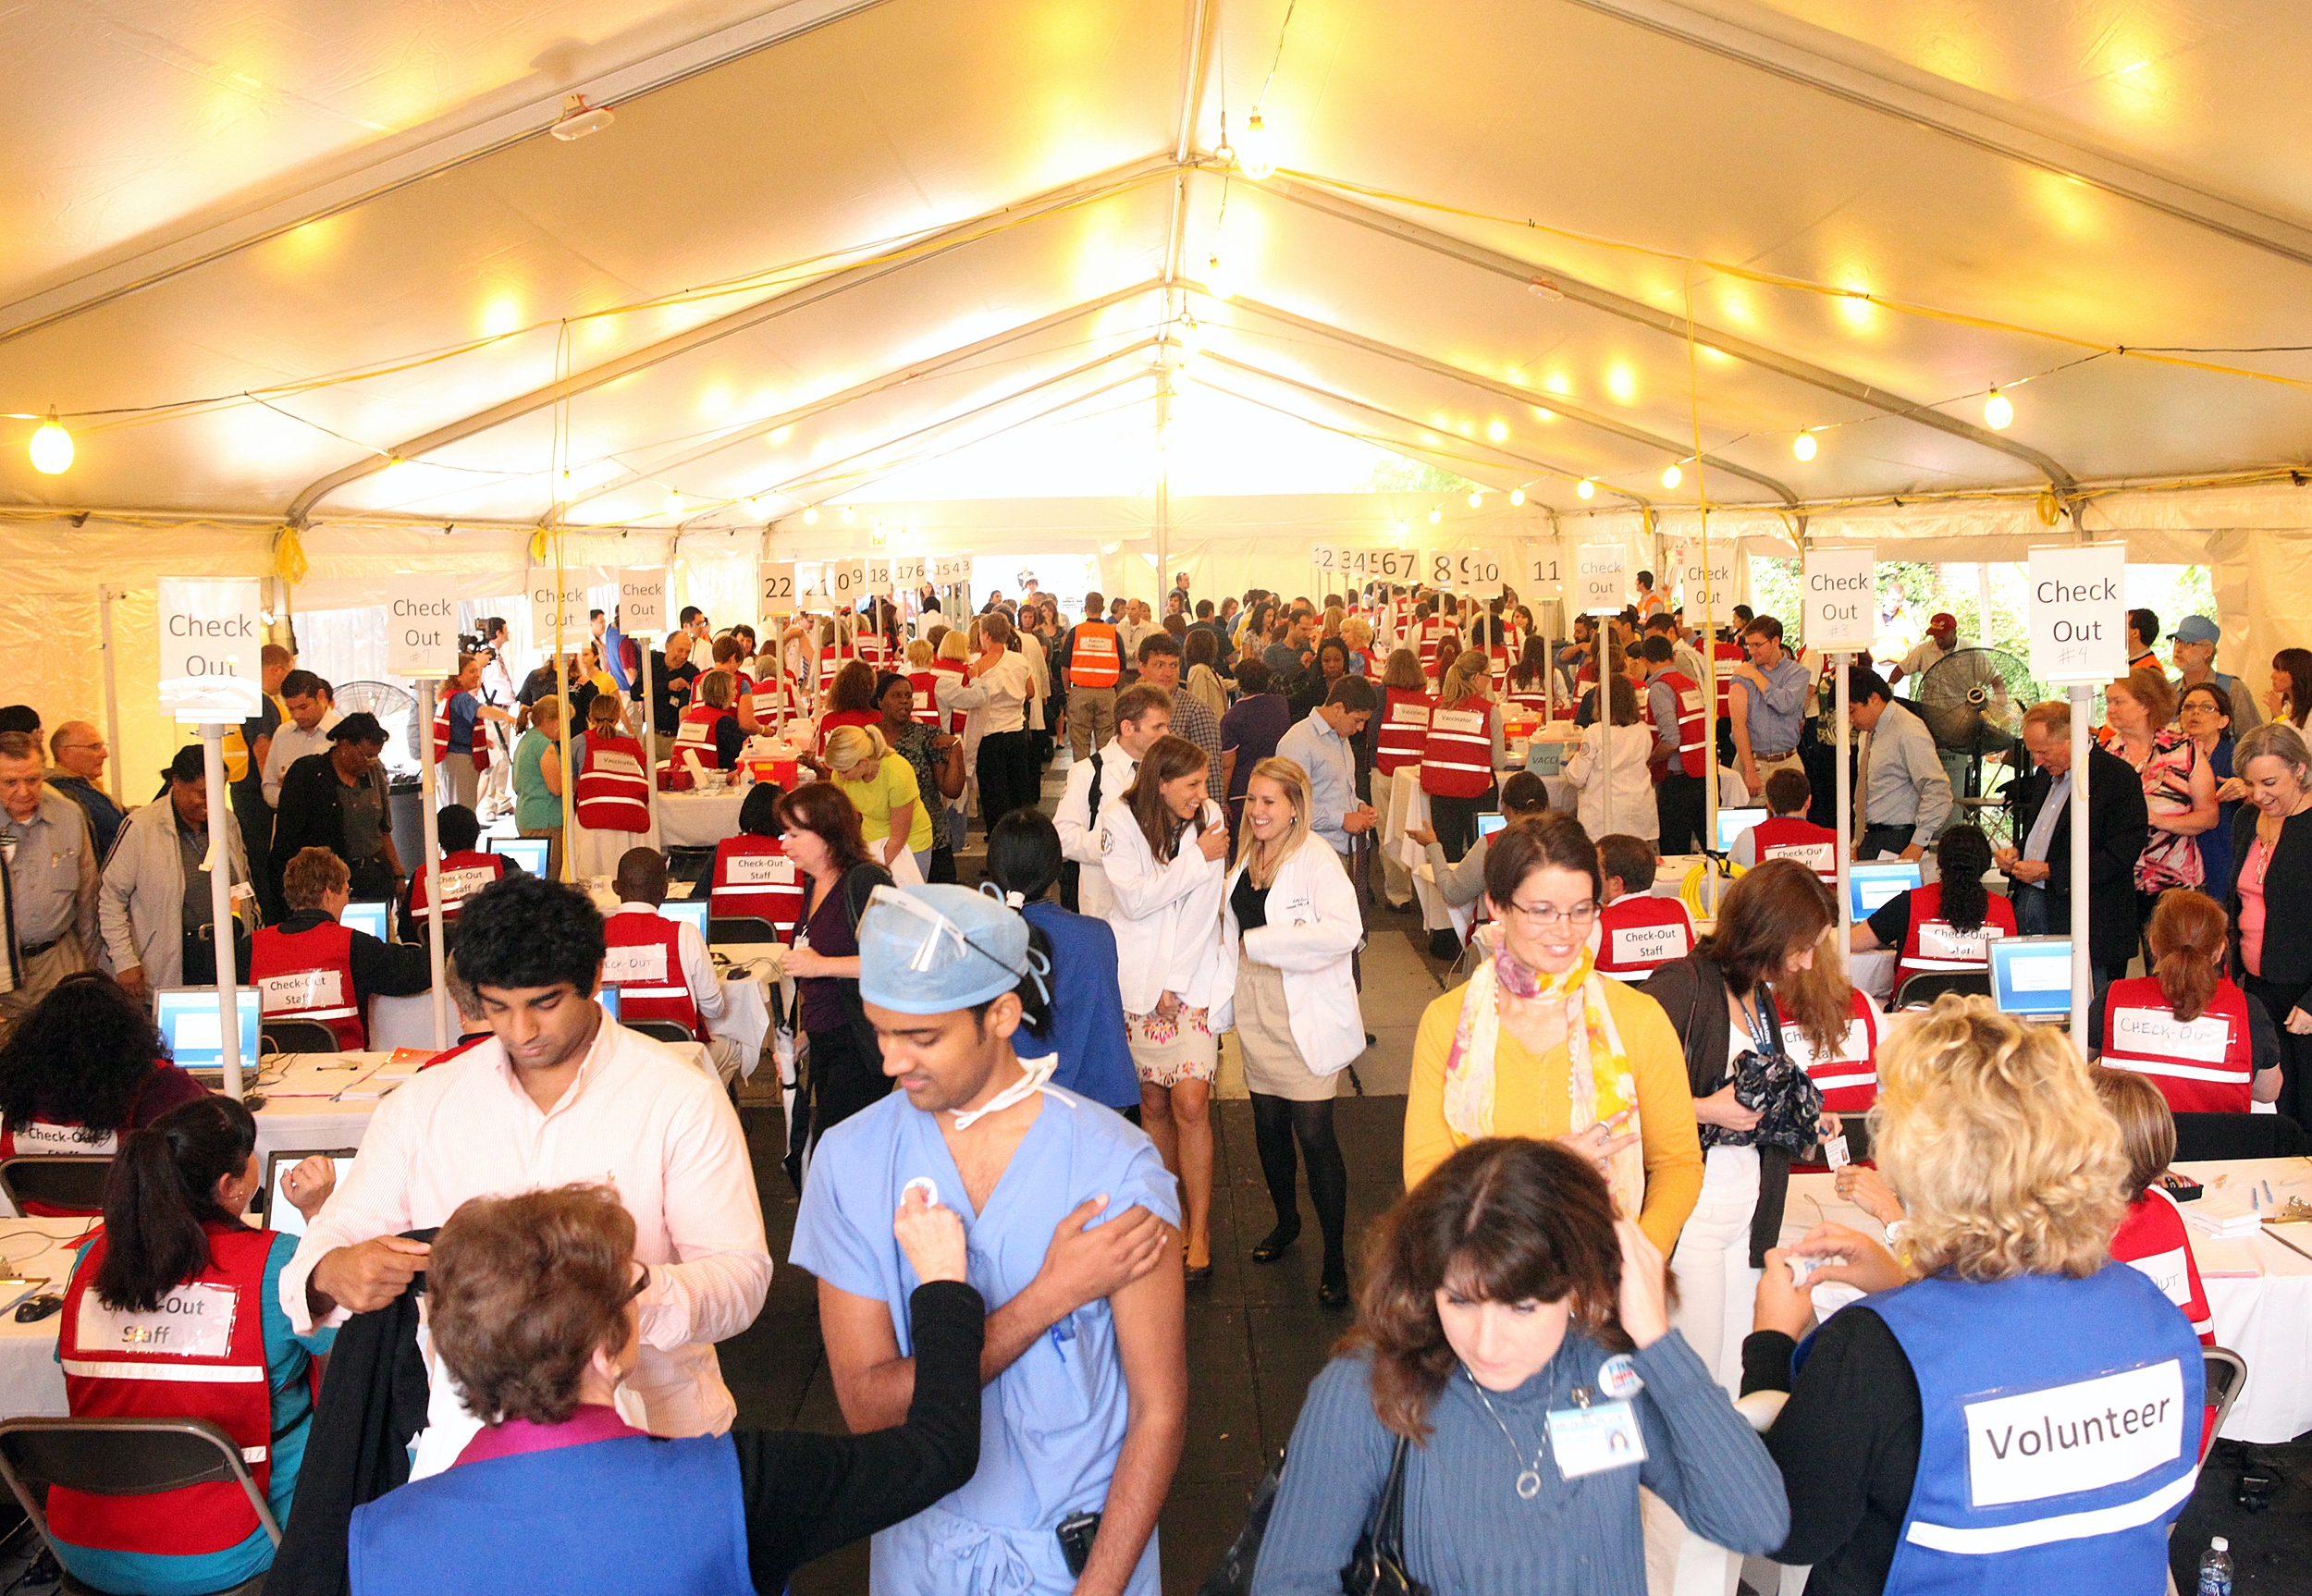 Image:  Flulapalooza tent, an attempt at Guinness Book of World Records.